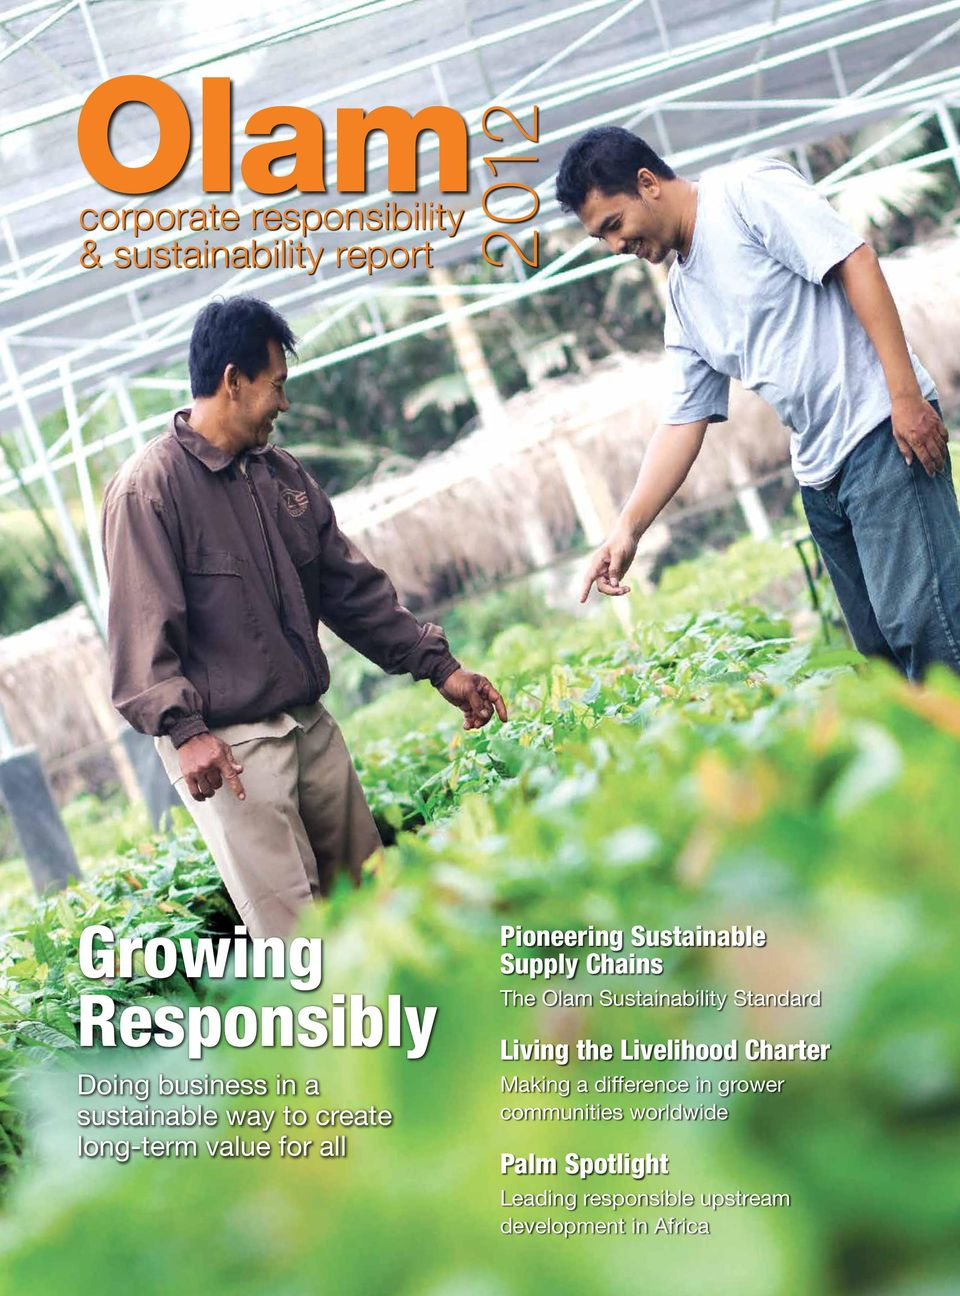 The Olam Sustainability Standard Living the Livelihood Charter Making a difference in